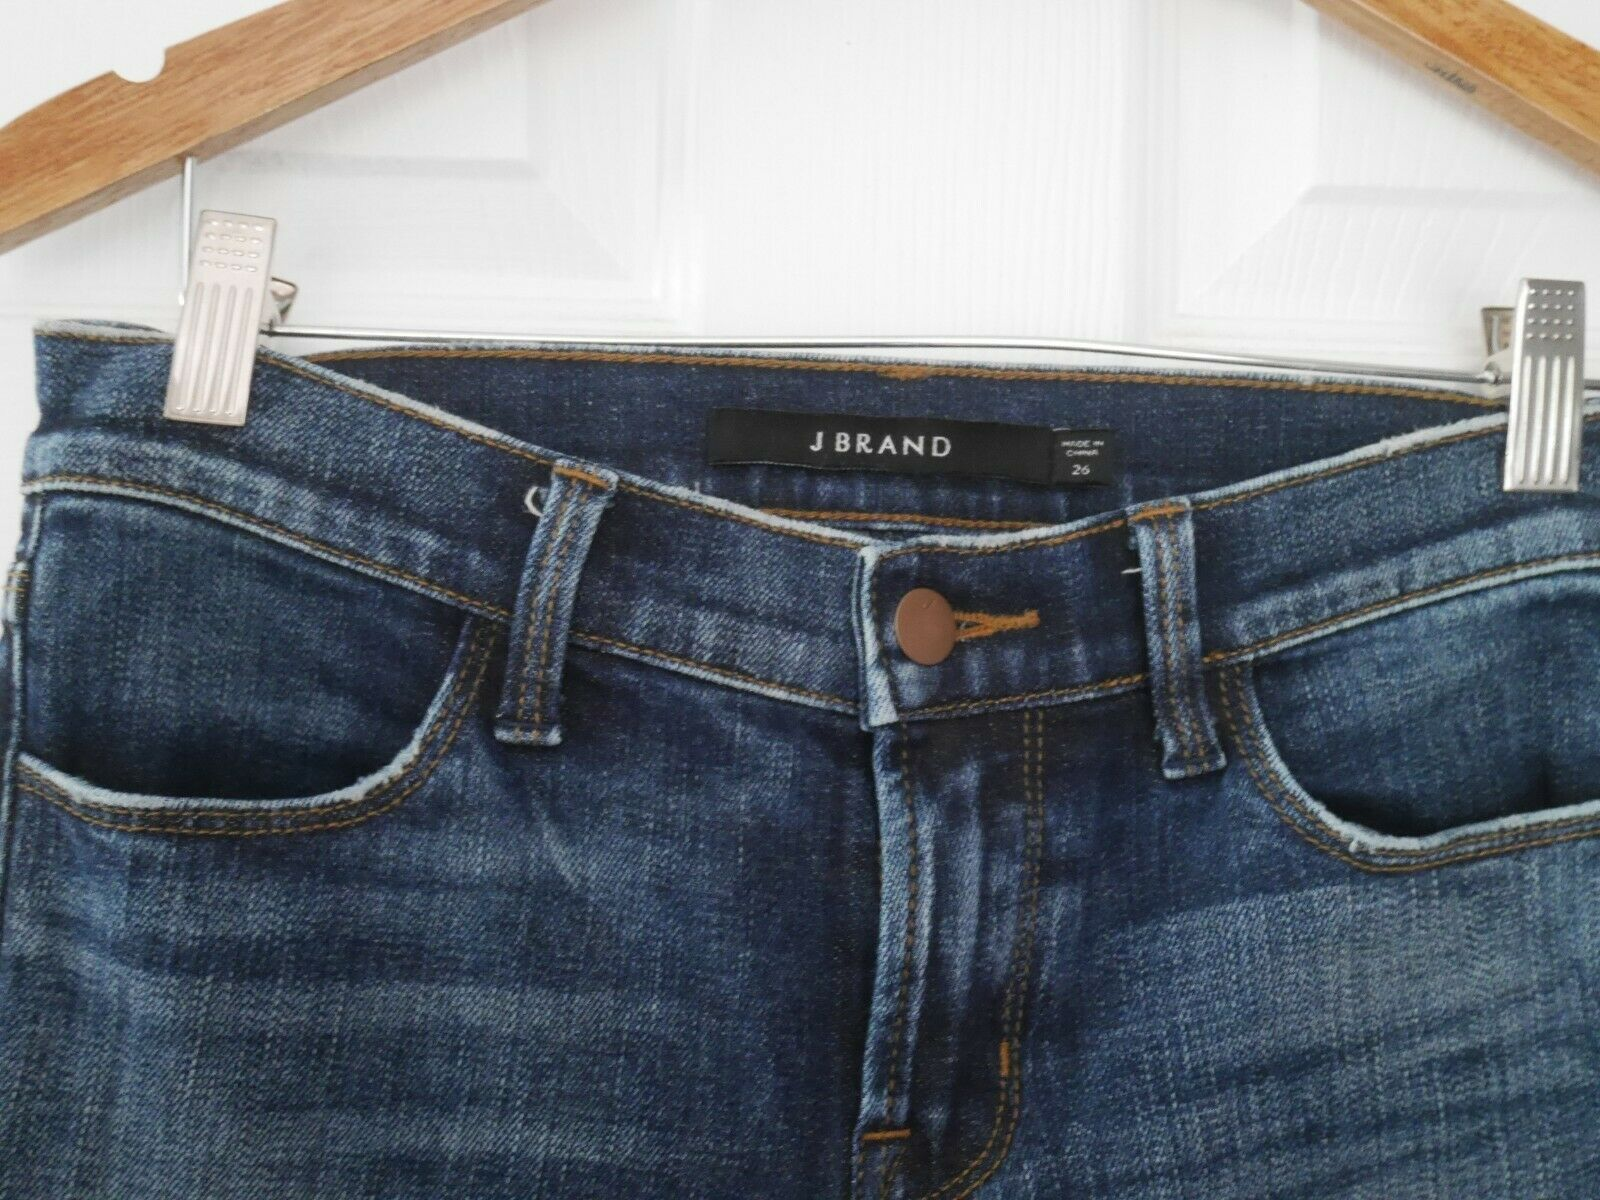 $228 J Brand - 620 Mid-Rise Super Skinny in Dark Erosion (Destroyed) - Size 26 image 7